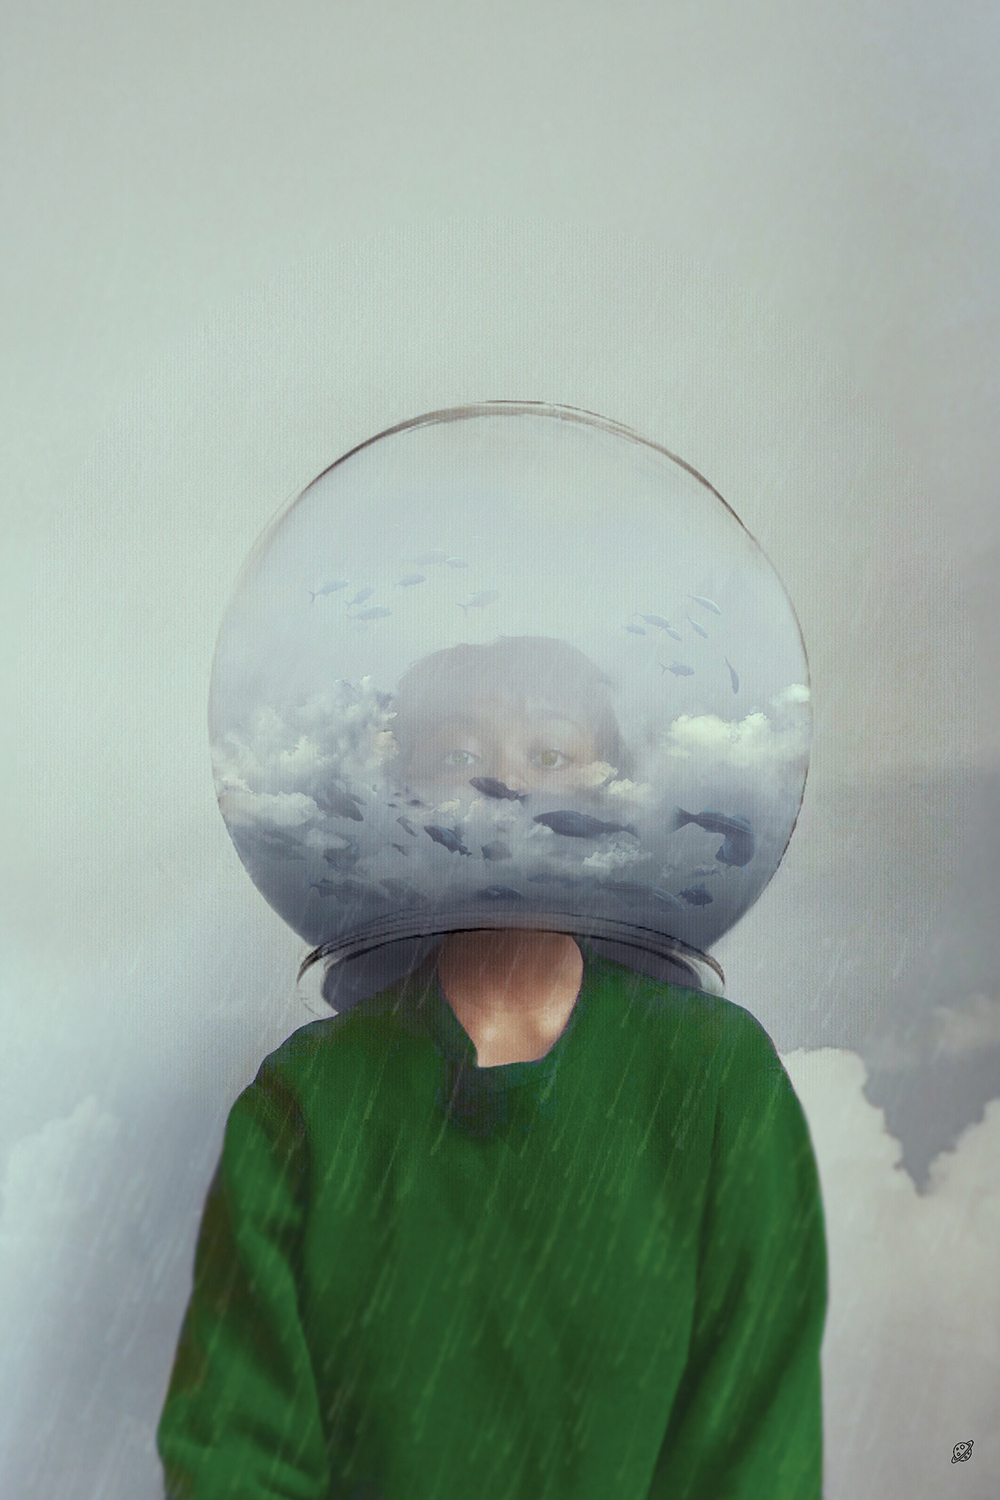 Forever Rain by Deandra Lee showcases a woman wearing a green sweater with a clouded fishbowl over her head